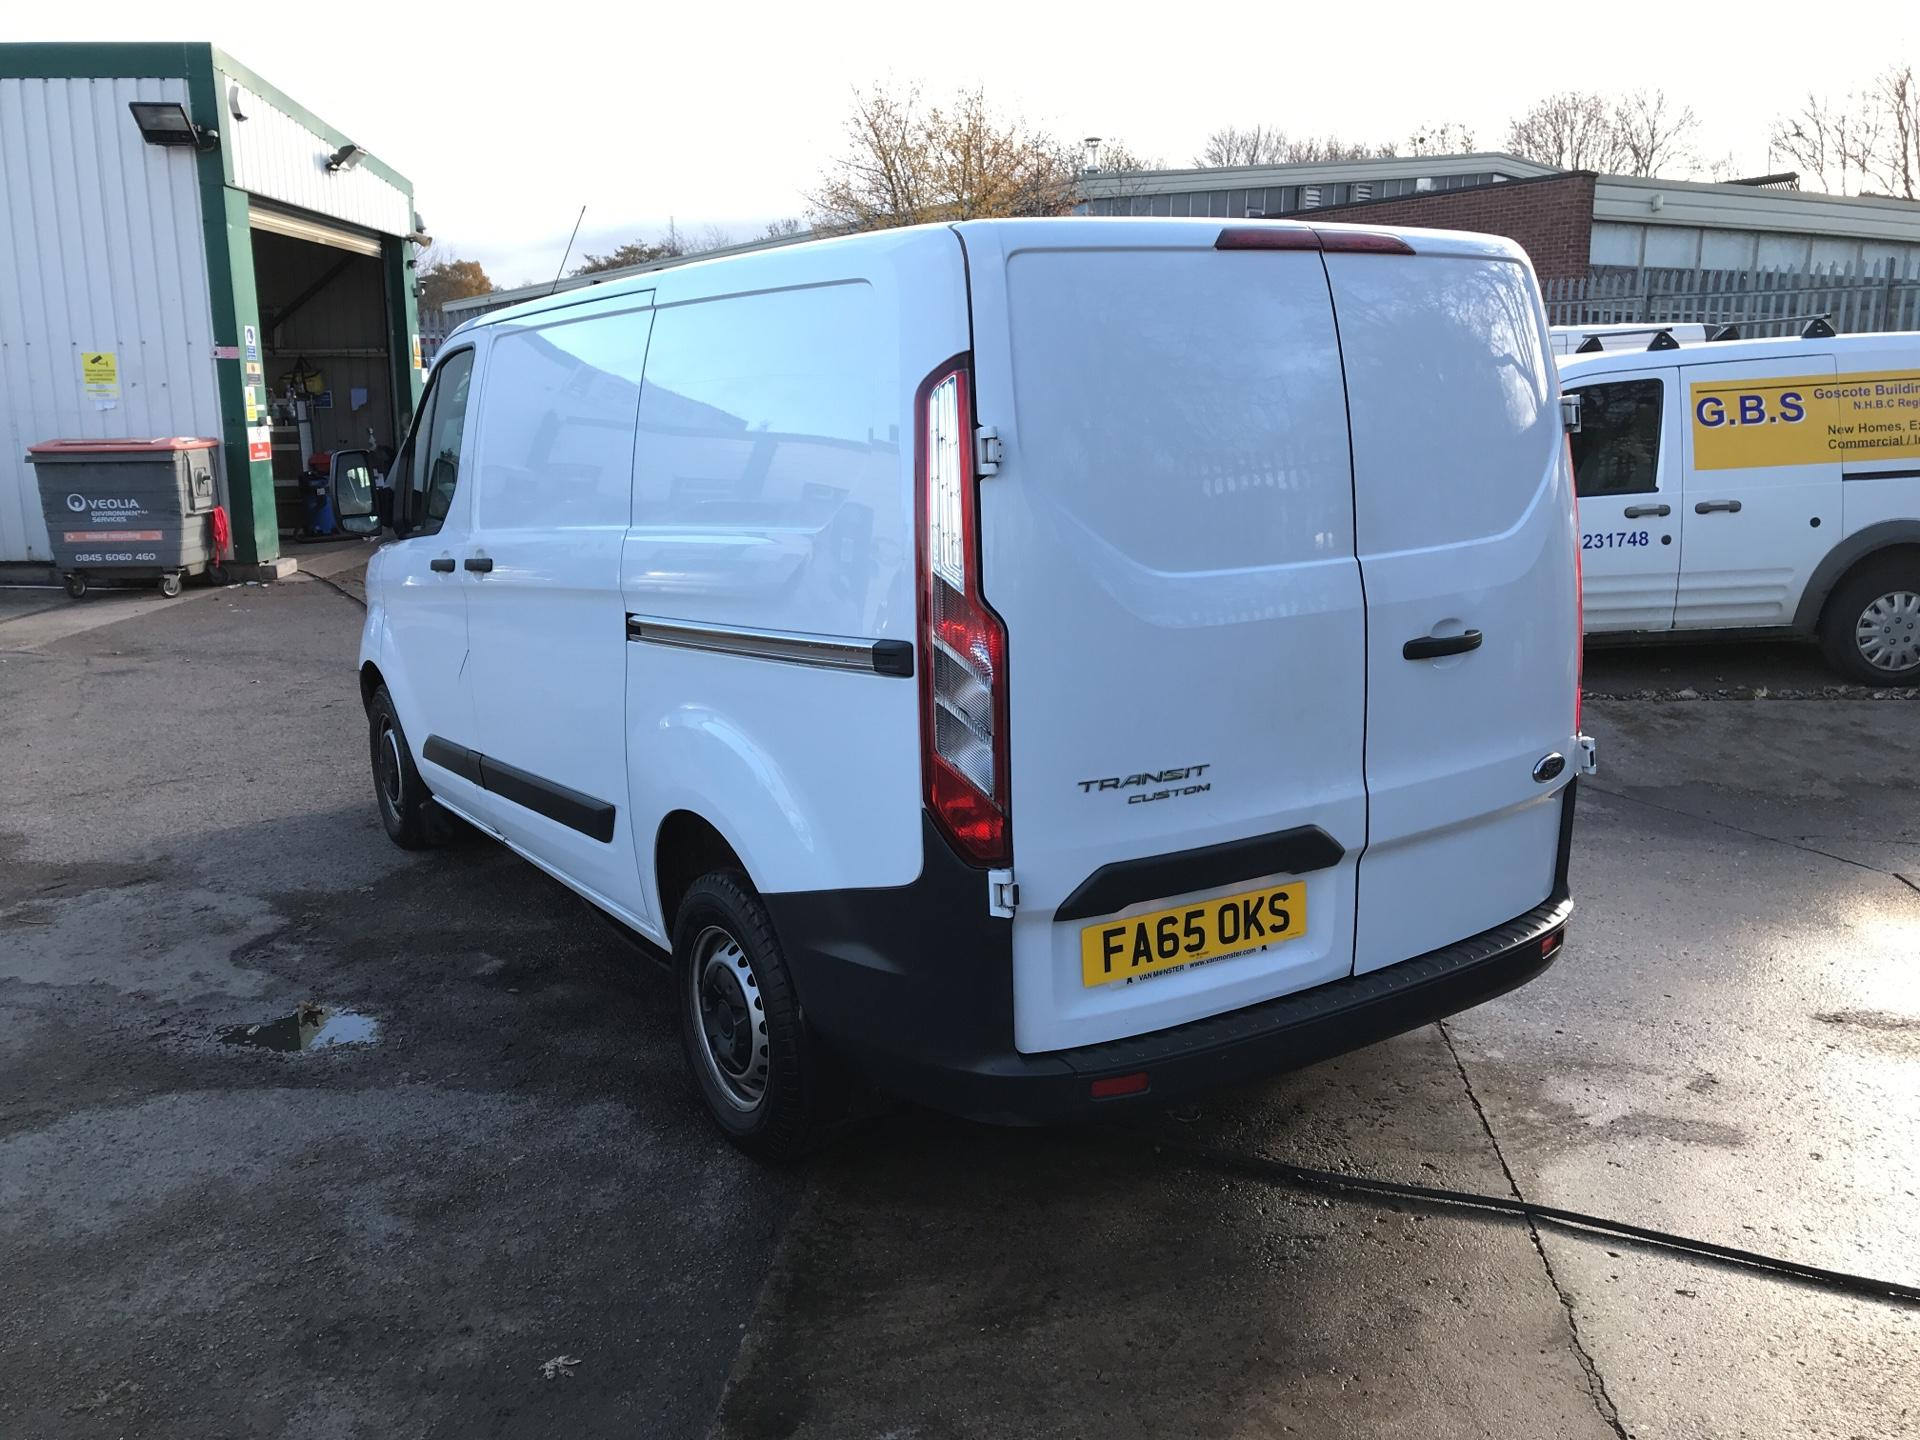 2016 Ford Transit Custom 290 L1 DIESEL FWD 2.2  TDCI 100PS LOW ROOF VAN EURO 5 *VALUE RANGE VEHICLE - CONDITION REFLECTED IN PRICE*  (FA65OKS) Image 5